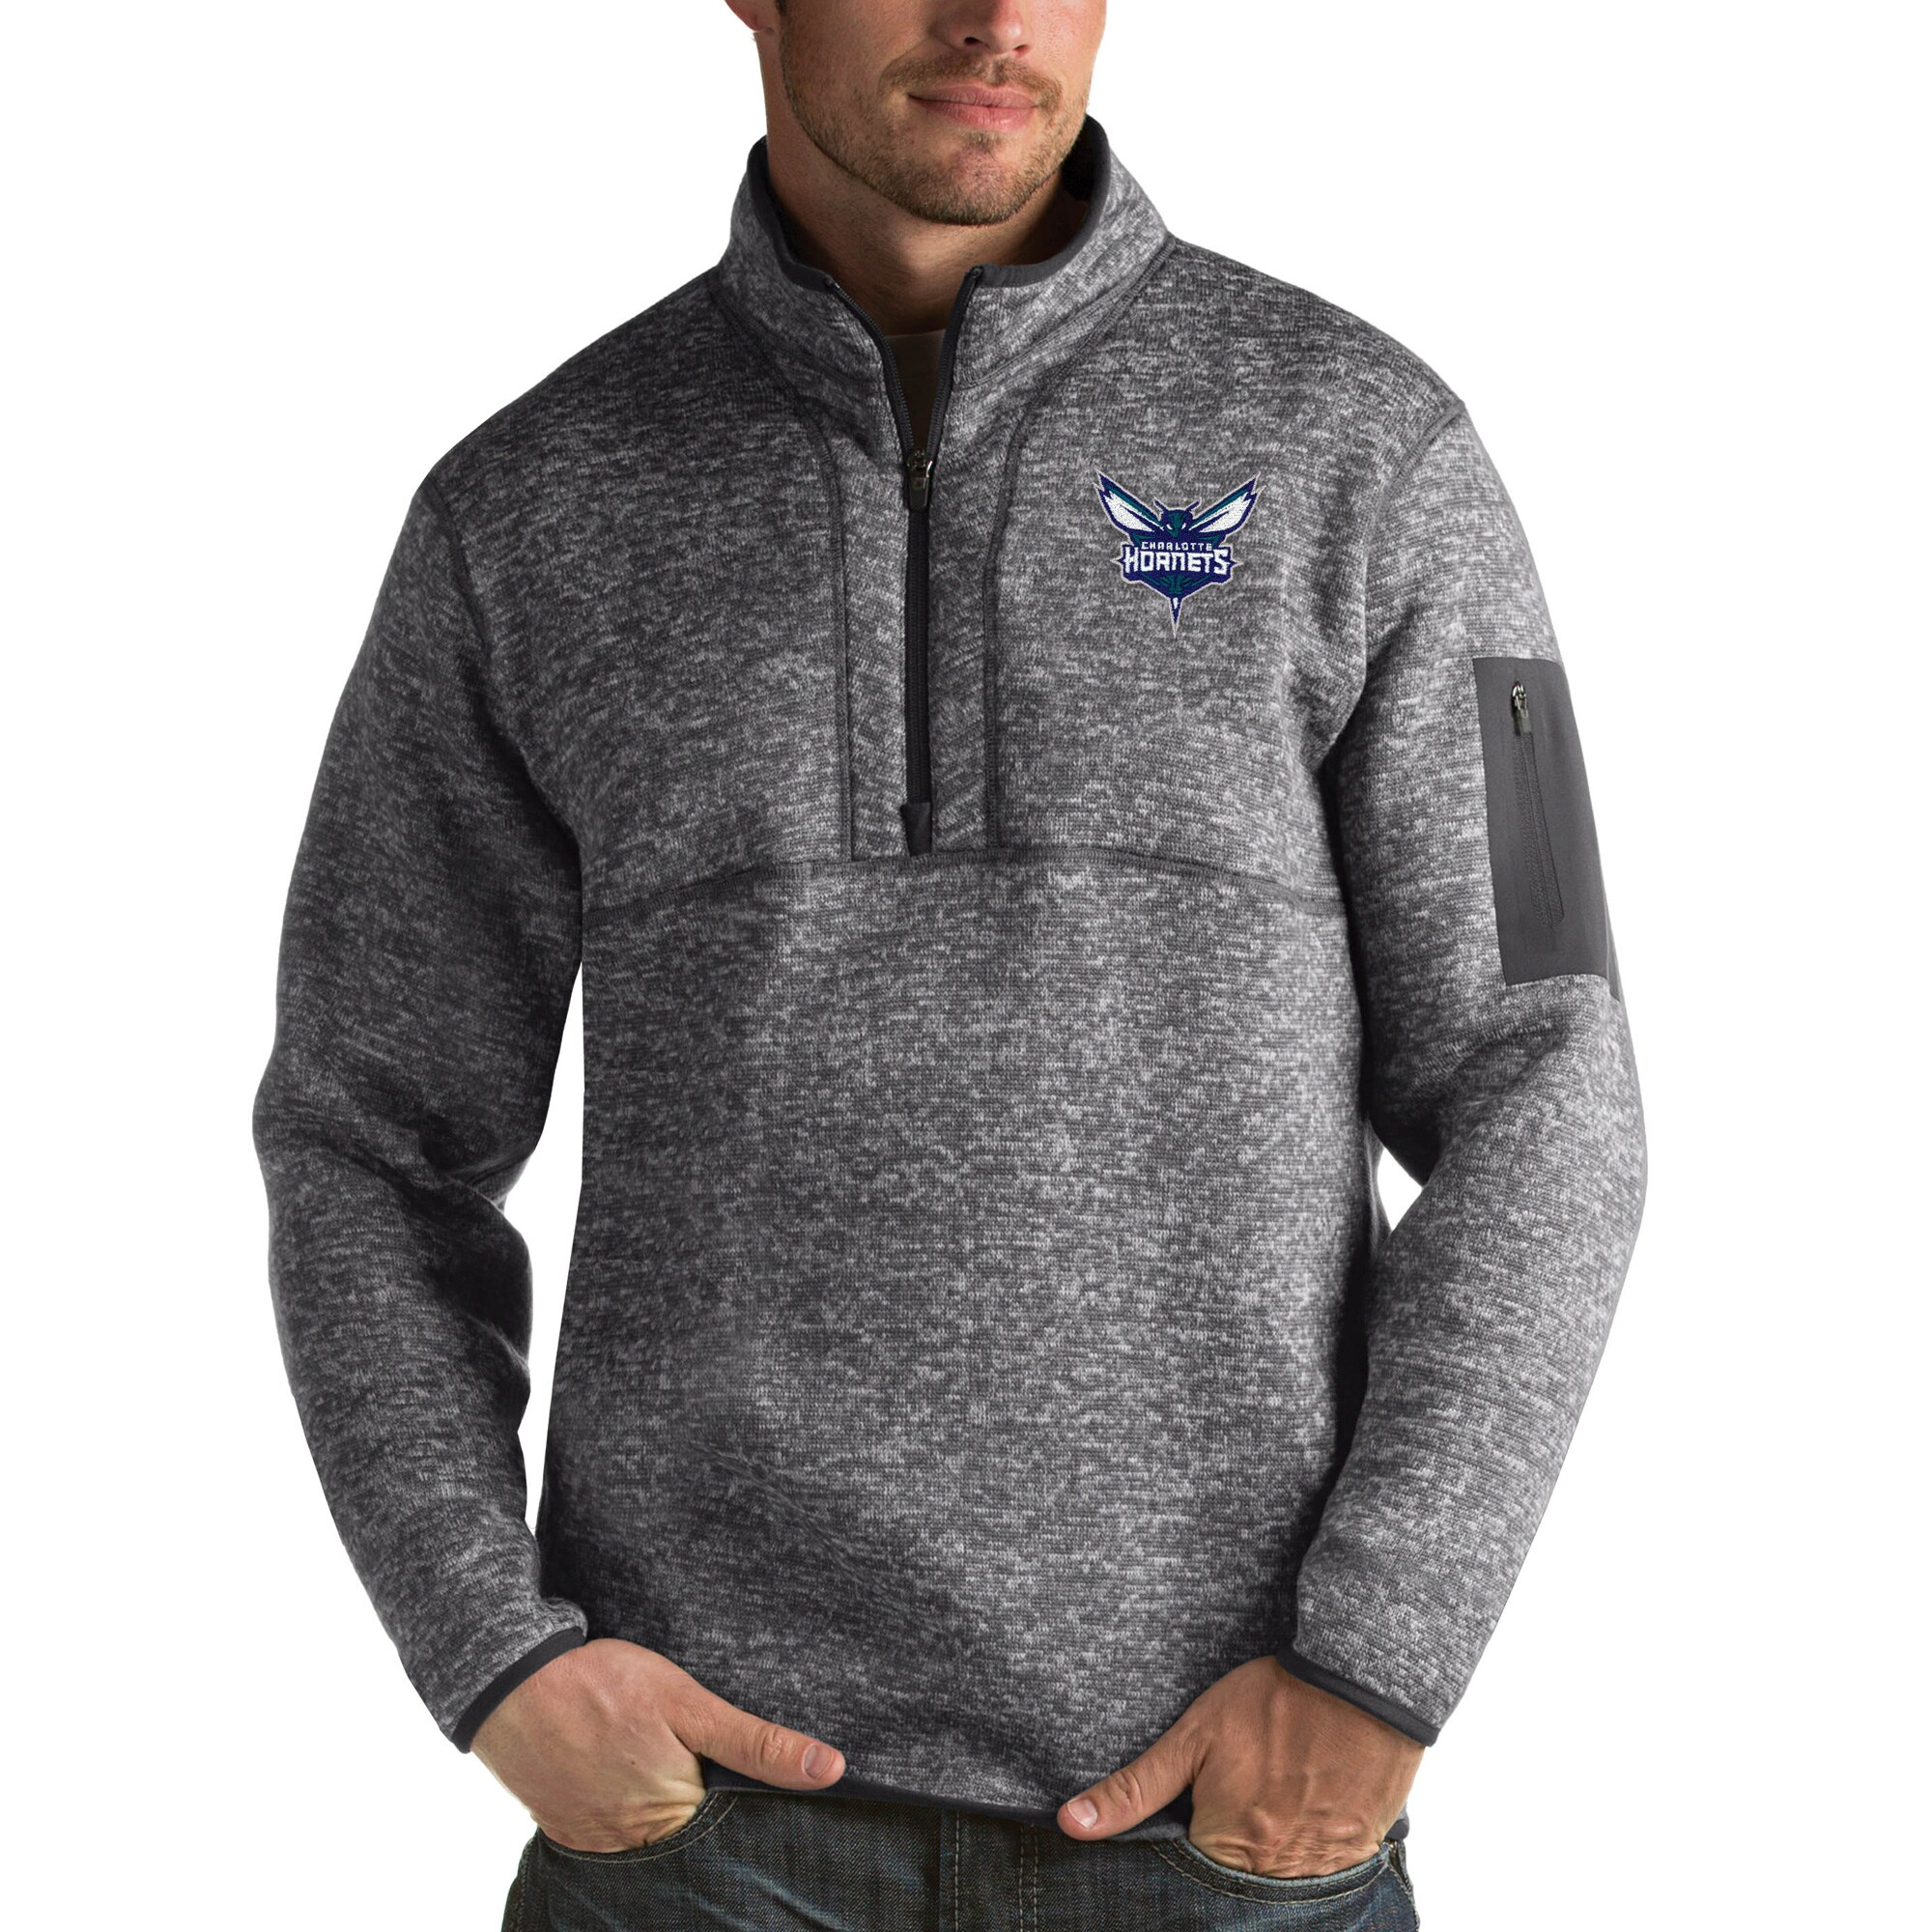 Charlotte Hornets Antigua Fortune Big & Tall Quarter-Zip Pullover Jacket - Charcoal